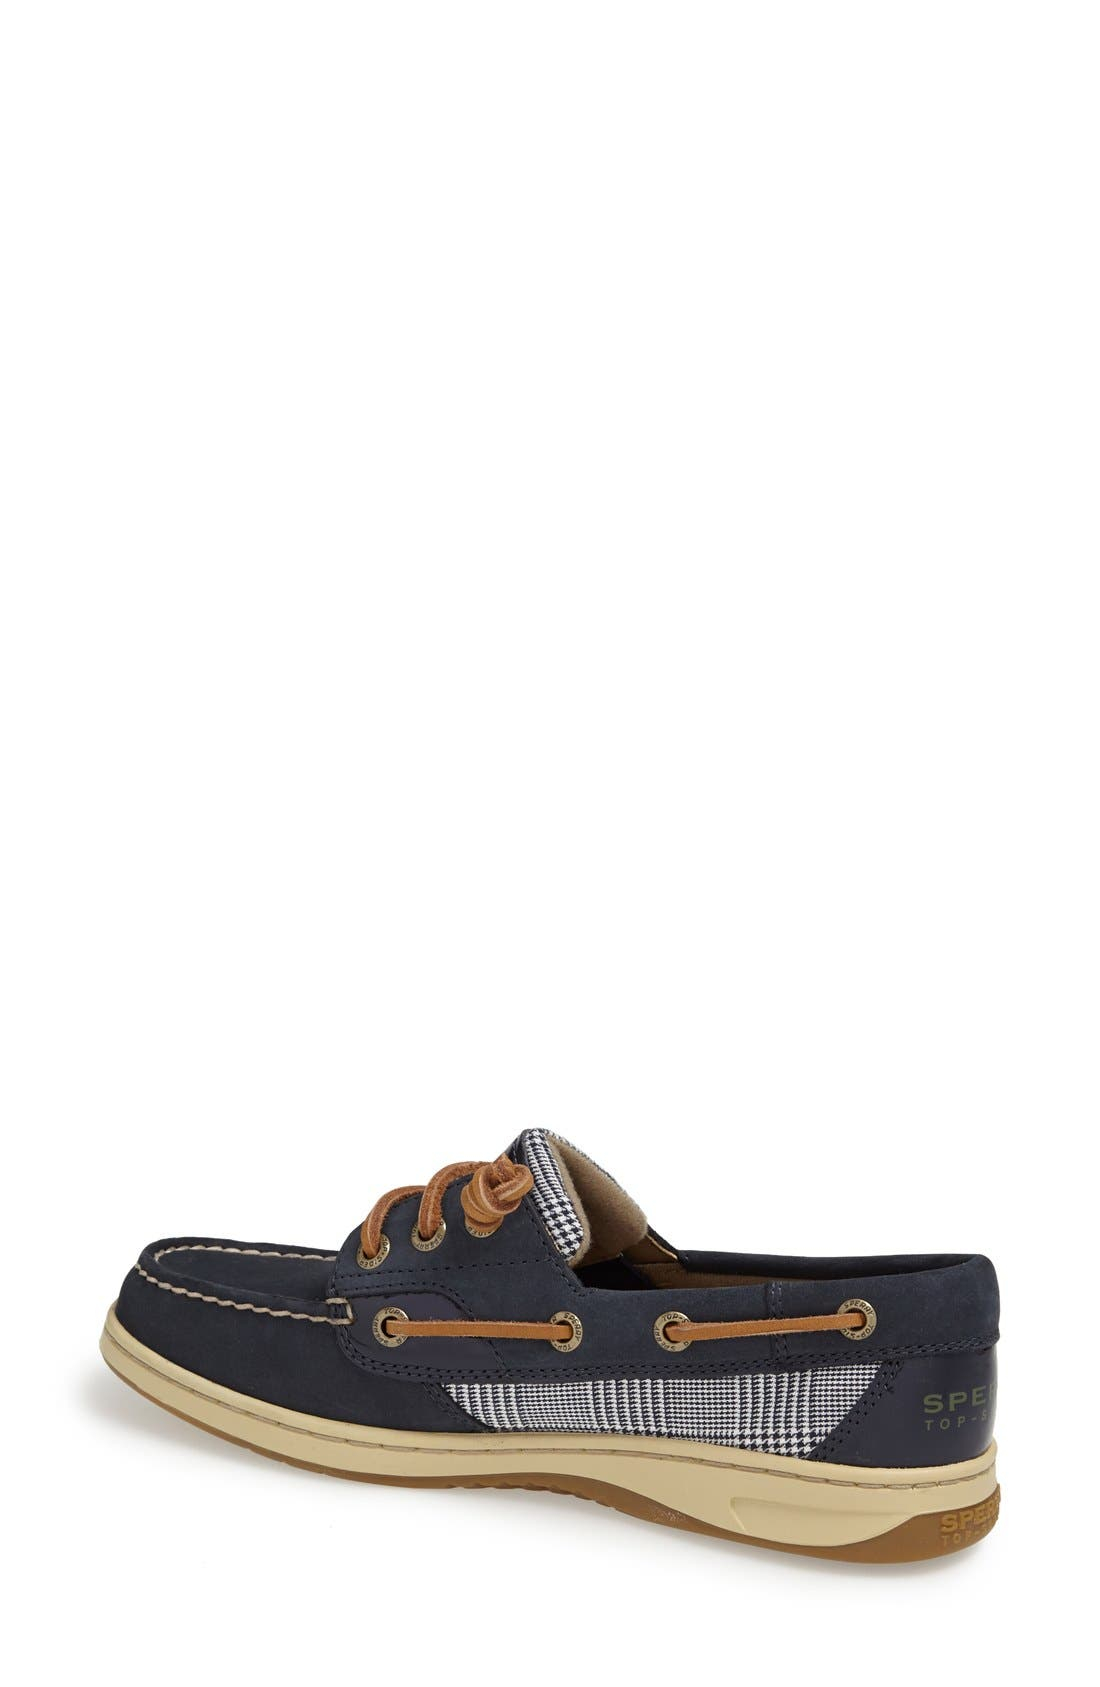 Alternate Image 2  - Sperry 'Ivyfish' Boat Shoe (Women)